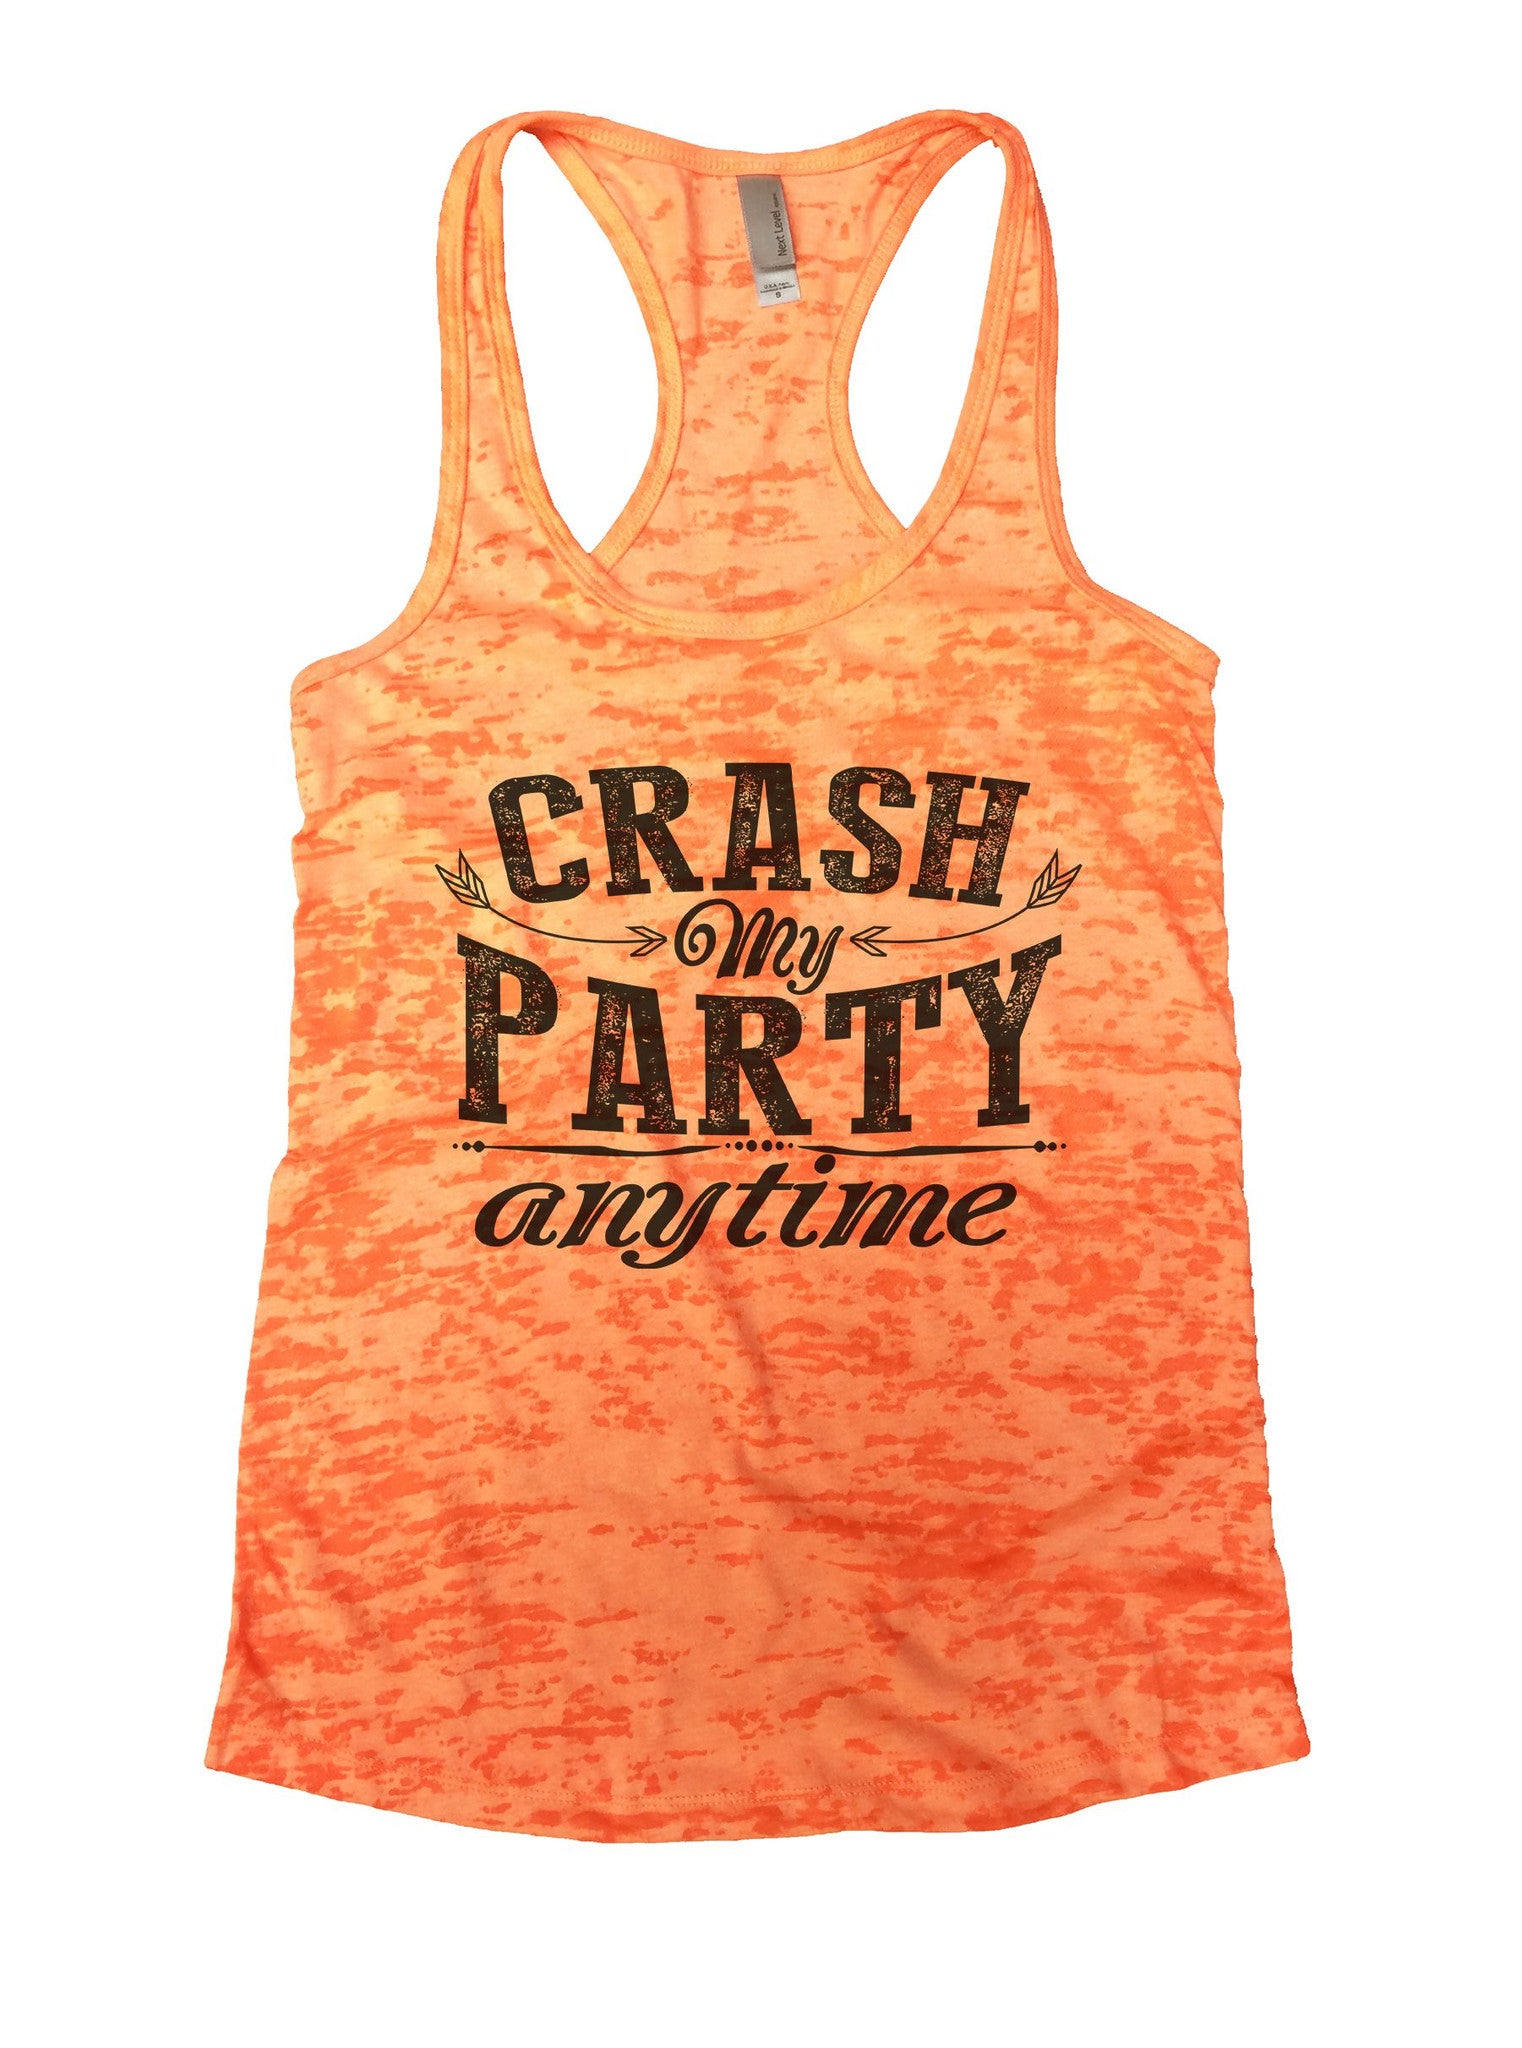 Crash My Party Anytime Burnout Tank Top By BurnoutTankTops.com - 980 - Funny Shirts Tank Tops Burnouts and Triblends  - 3